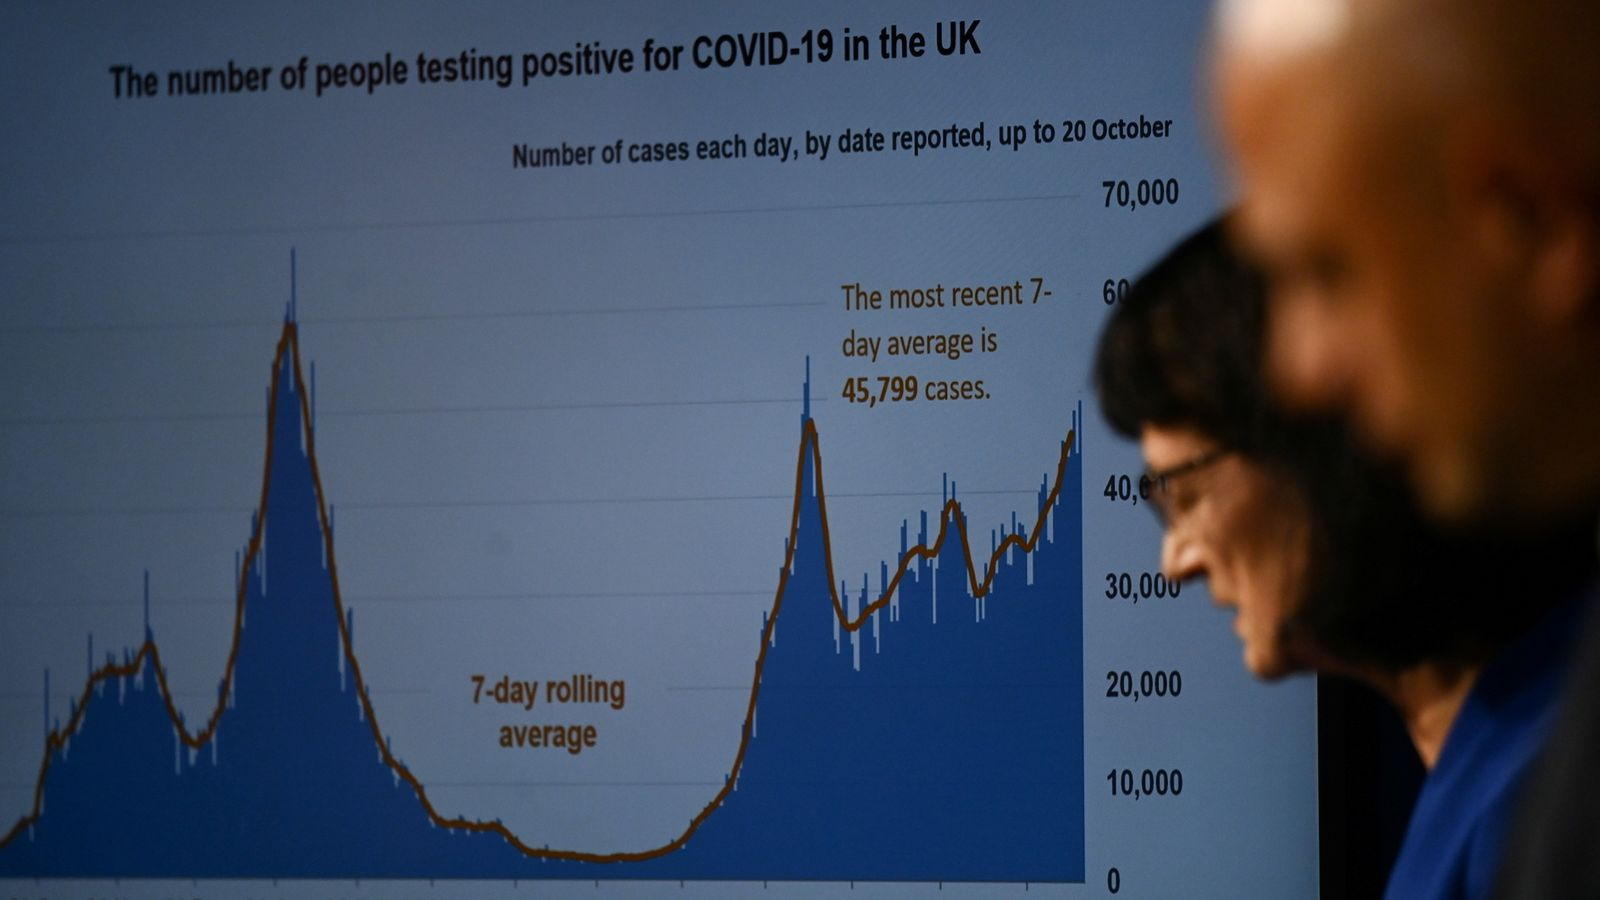 COVID-19: Govt attacked for refusing to move to Plan B, as doctors warn action is needed now